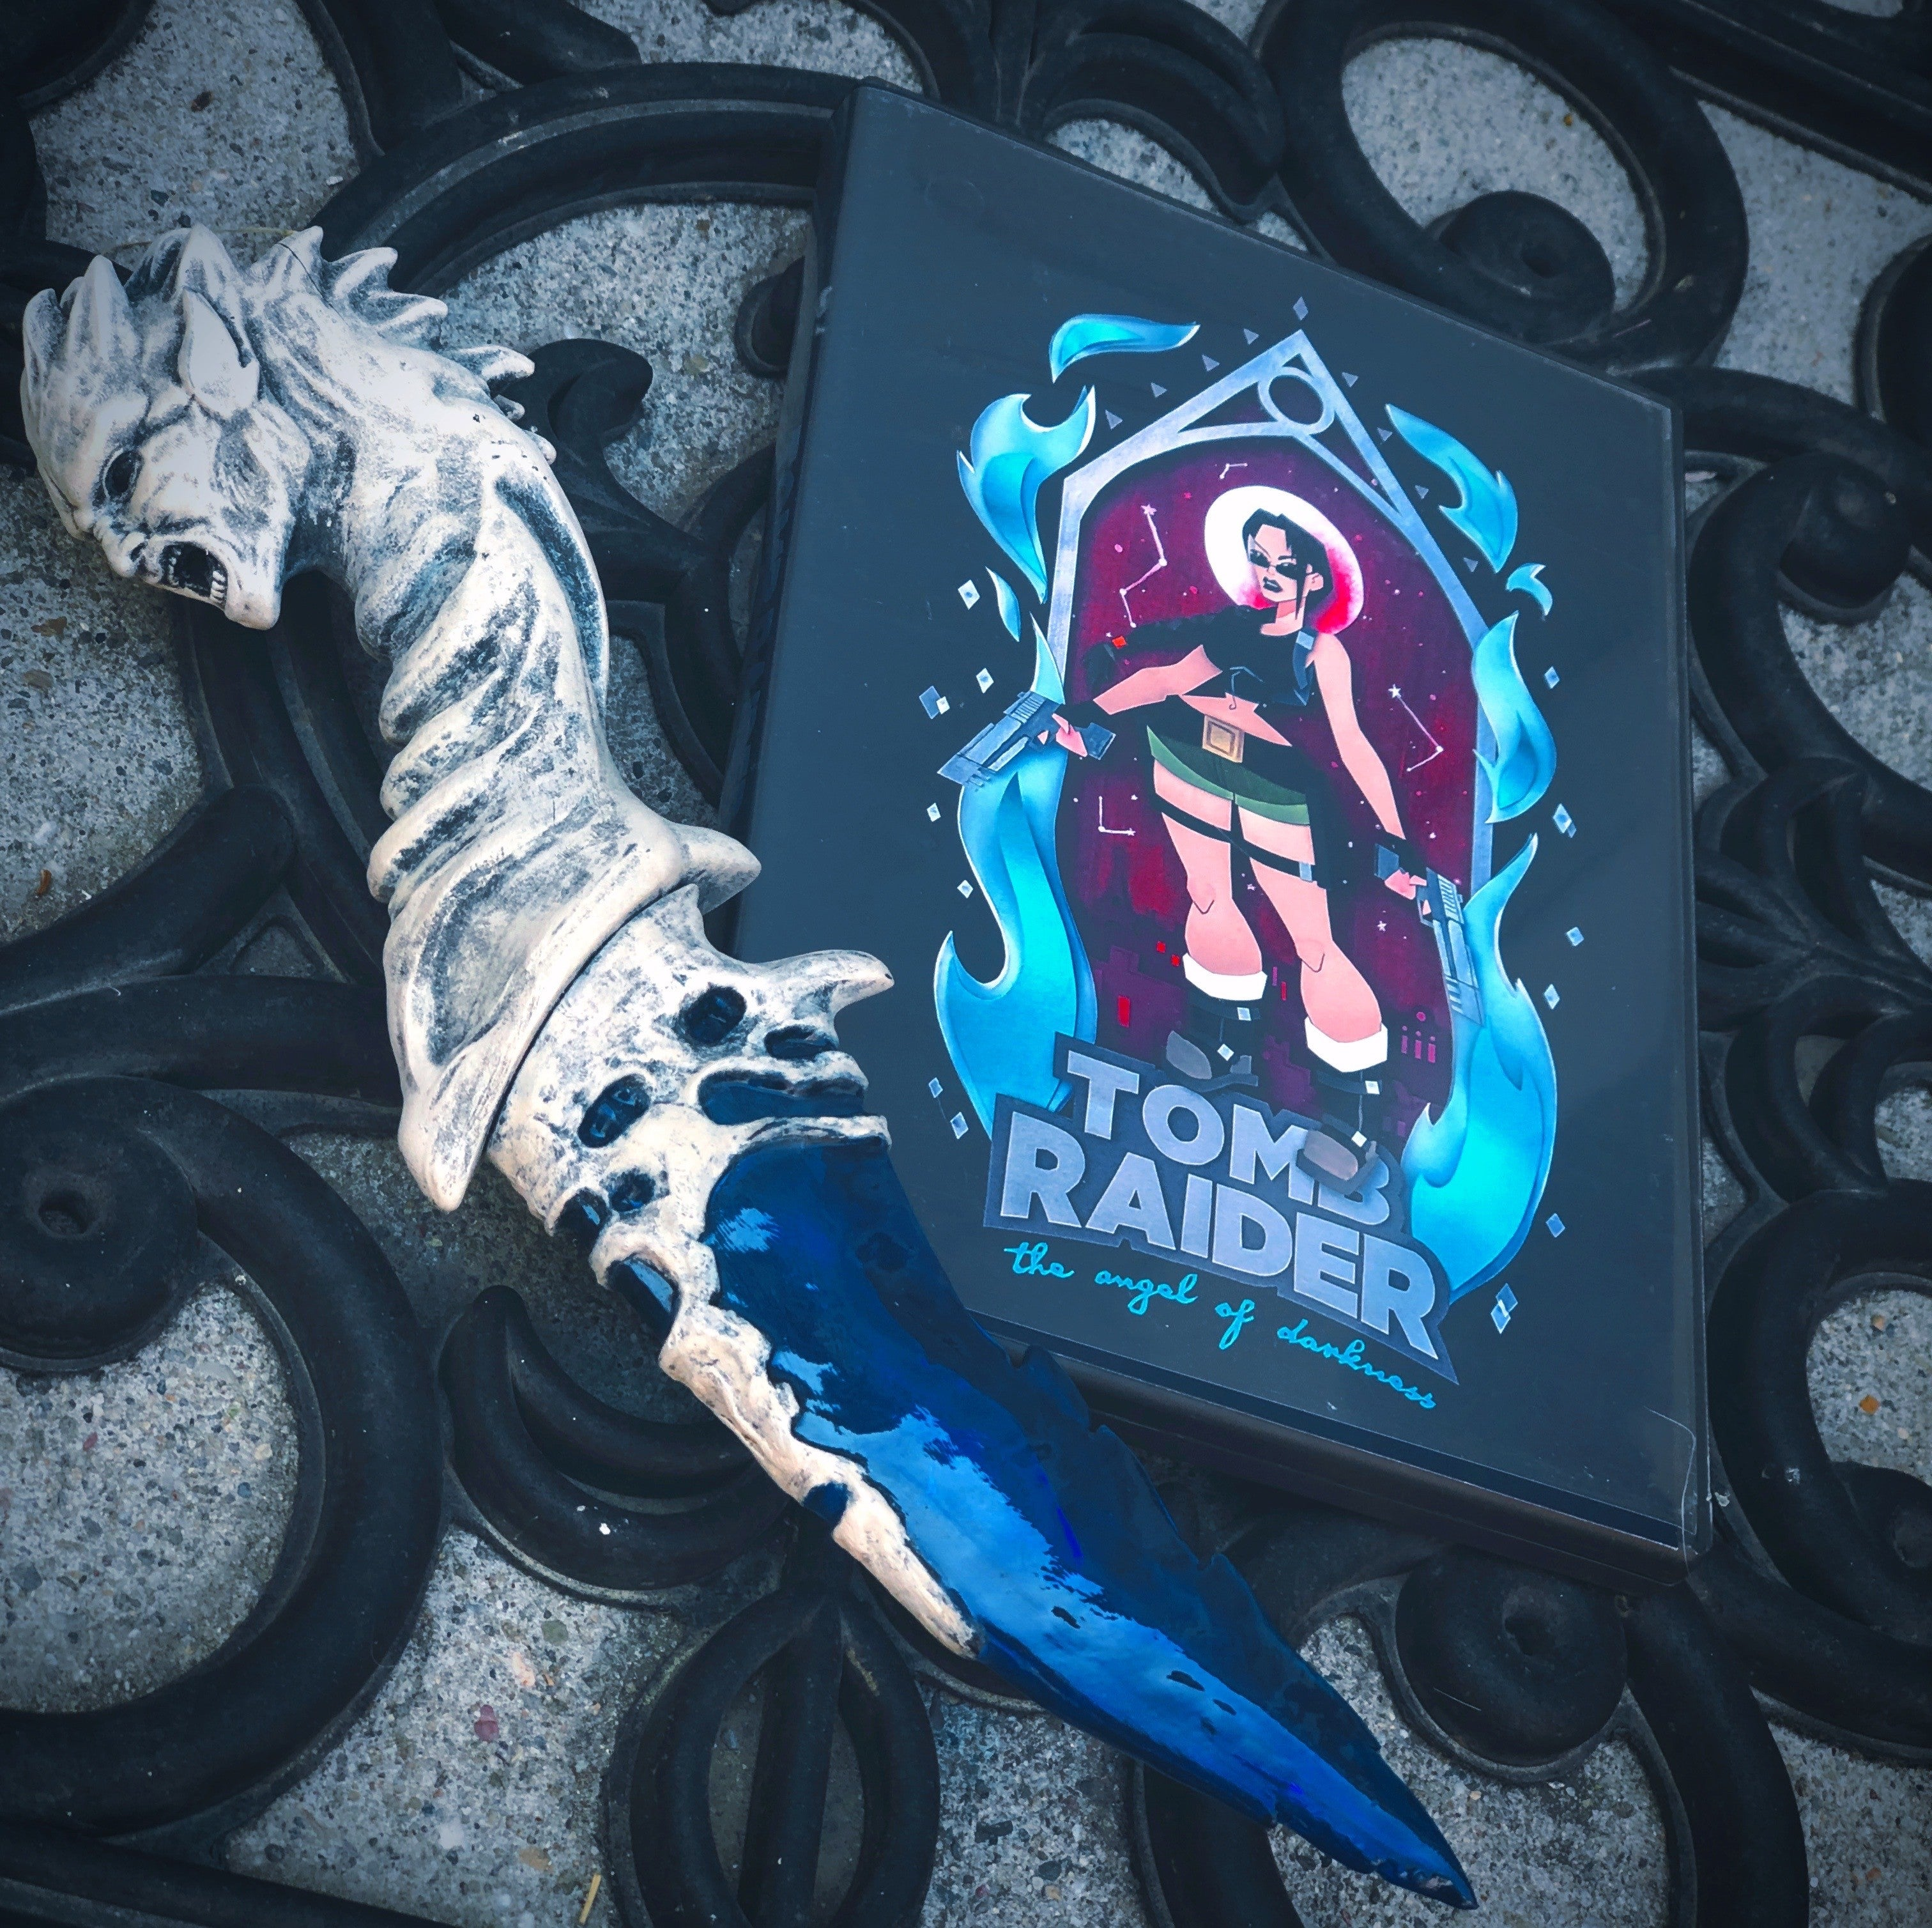 A photograph of Caleb's box art next to an artifact from The Angel of Darkness.